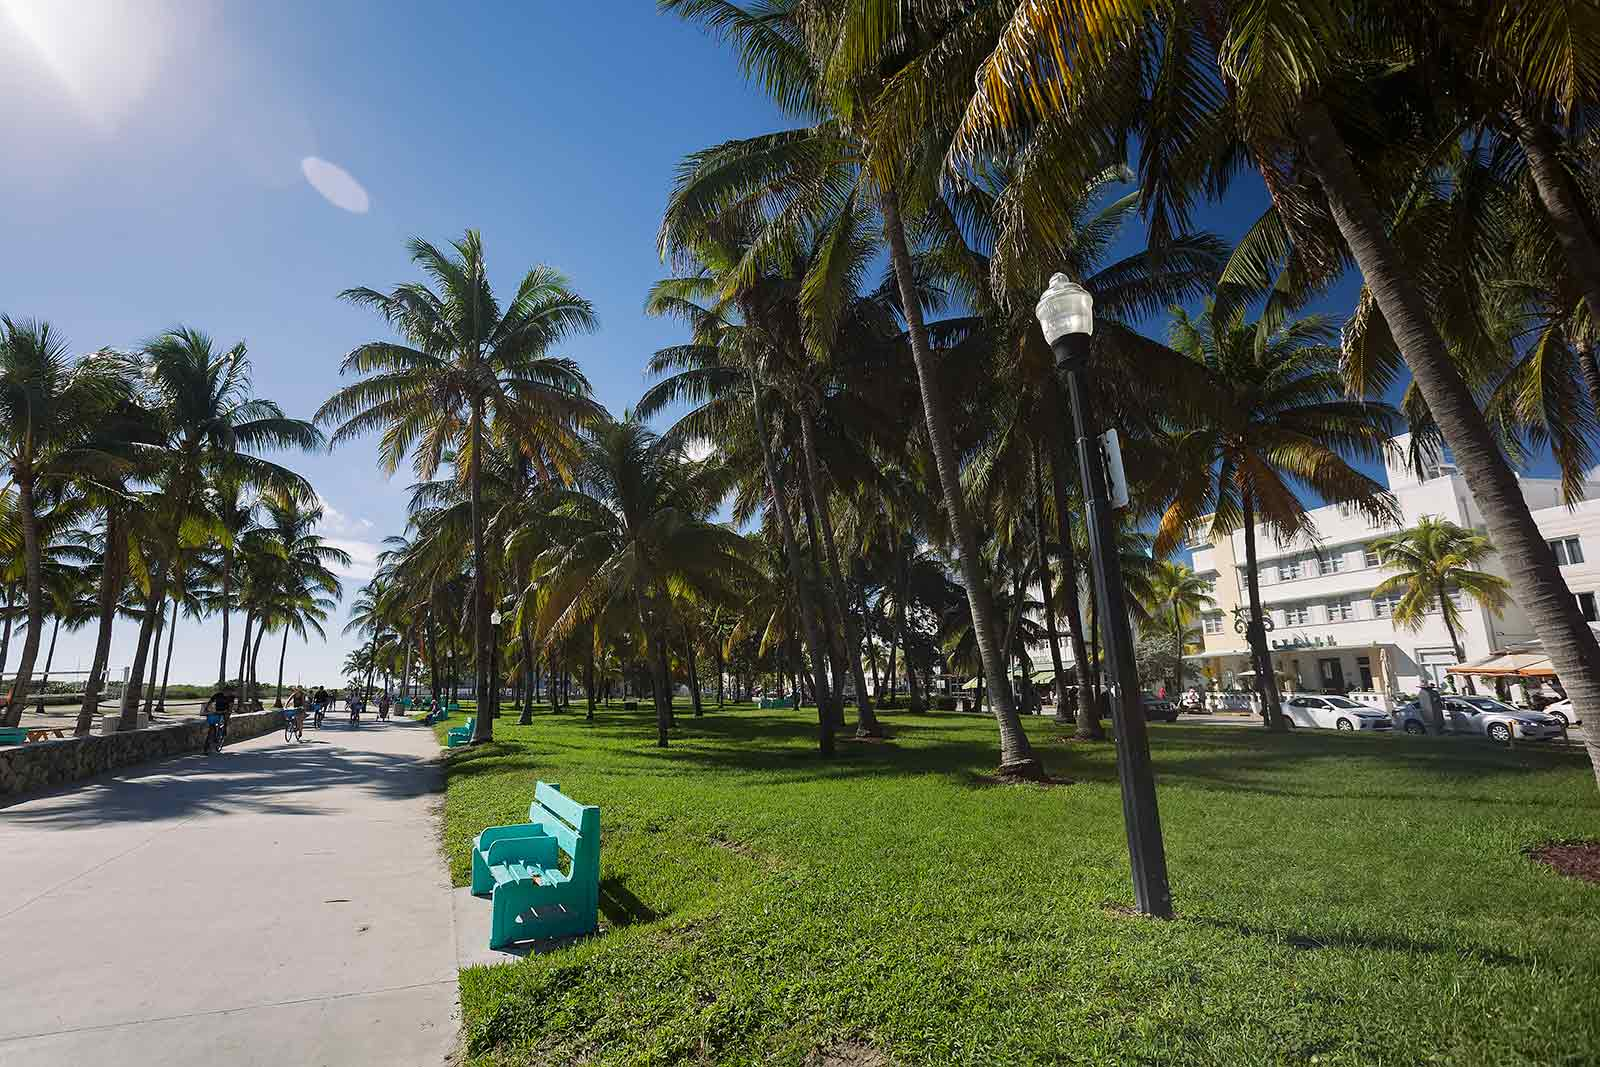 The Miami Beach Boardwalk begins at Indian Beach Park at 46th Street and Collins Ave and continues through the Ocean Drive Promenade to 5th Street. The distance between 46th street and 5th street is approximately 6,5 kilometres - the perfect distance for a nice jog or stroll.